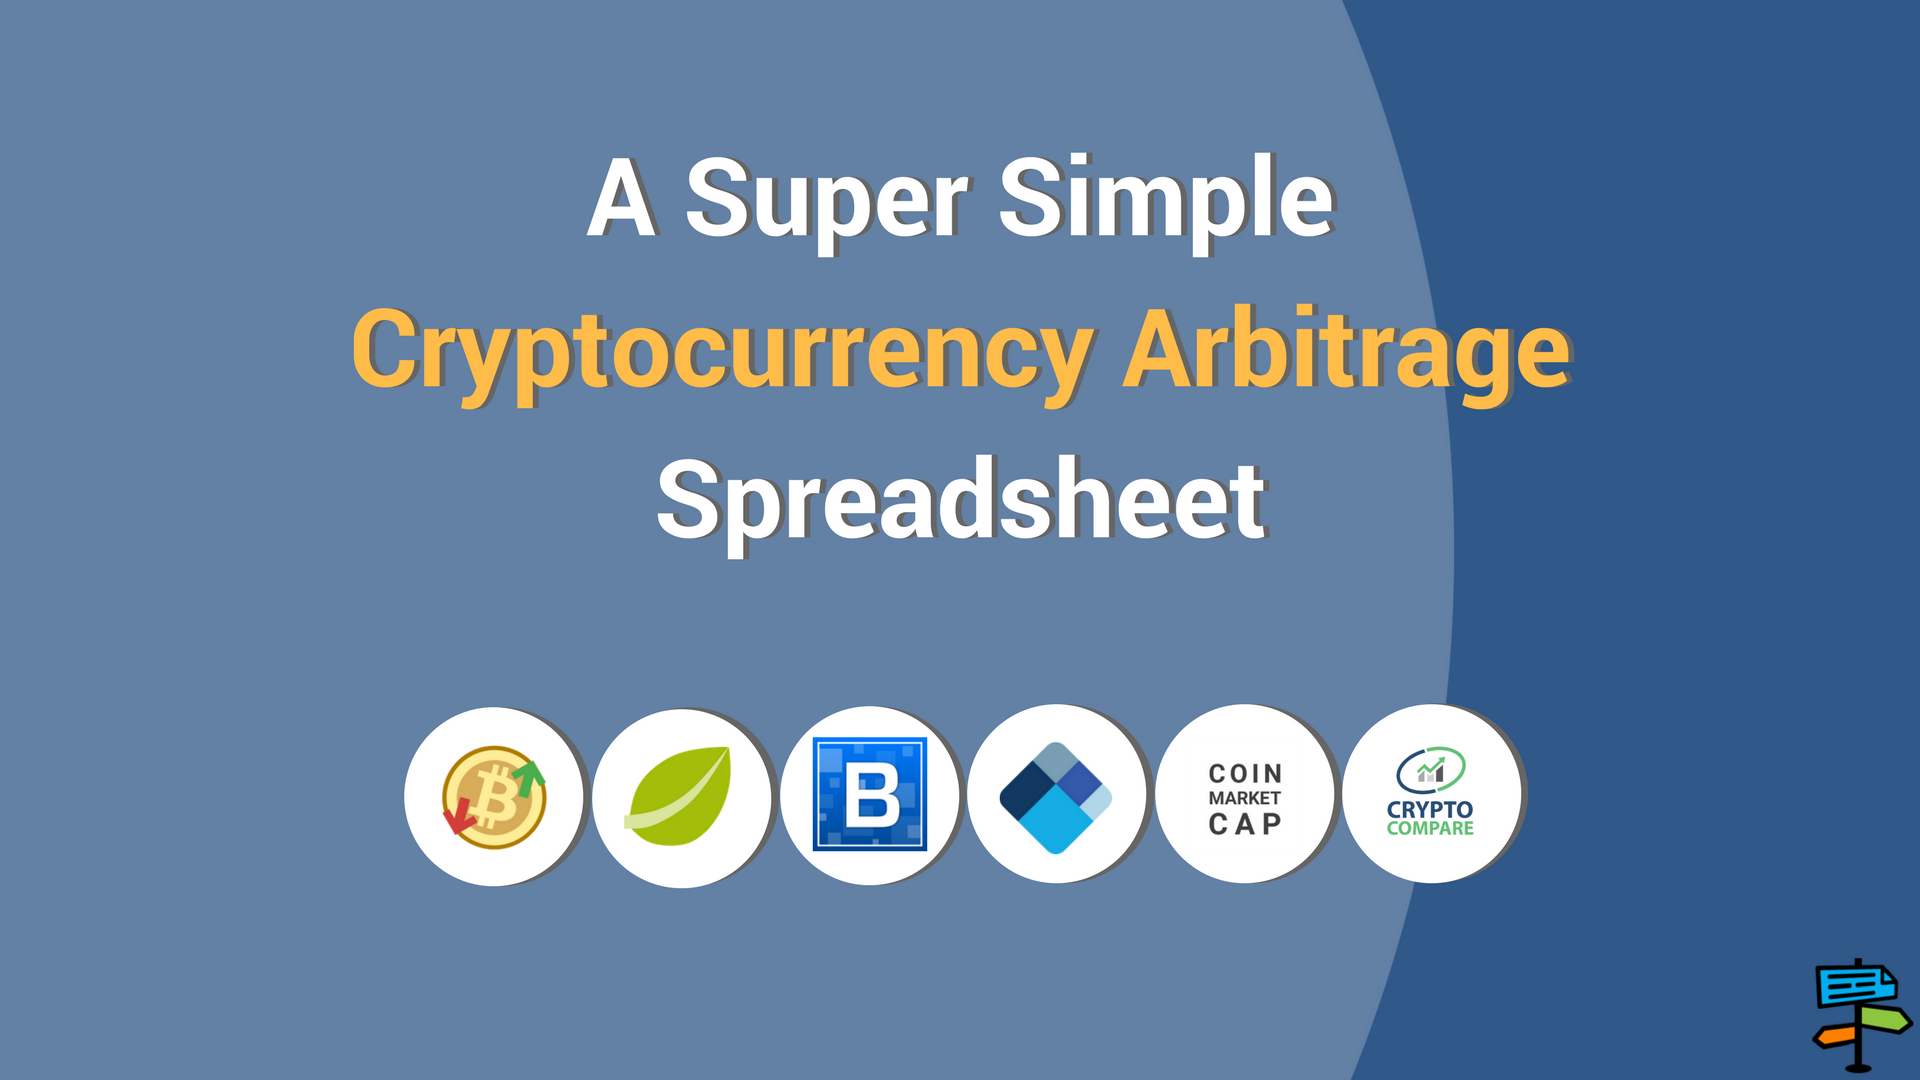 Bitcoin Trading Spreadsheet Intended For A Super Simple Cryptocurrency Arbitrage Spreadsheet For Finding